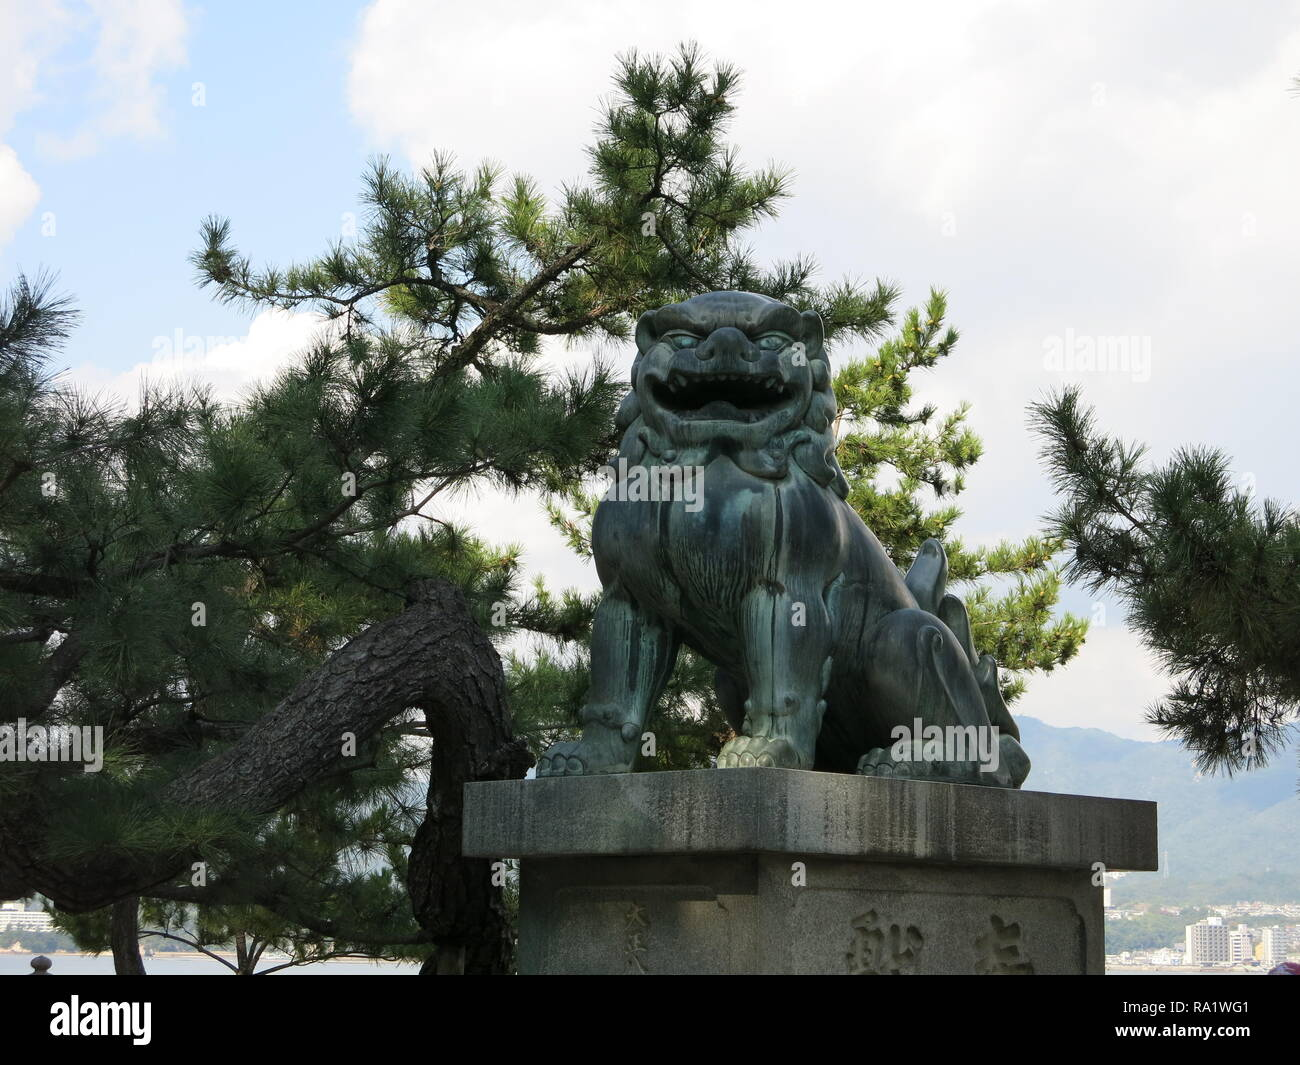 Close-up of the open-mouthed lion (agyoo), one of the pair of statues guarding the entrance to the Itsukushima Shrine, Miyajima island, Japan - Stock Image